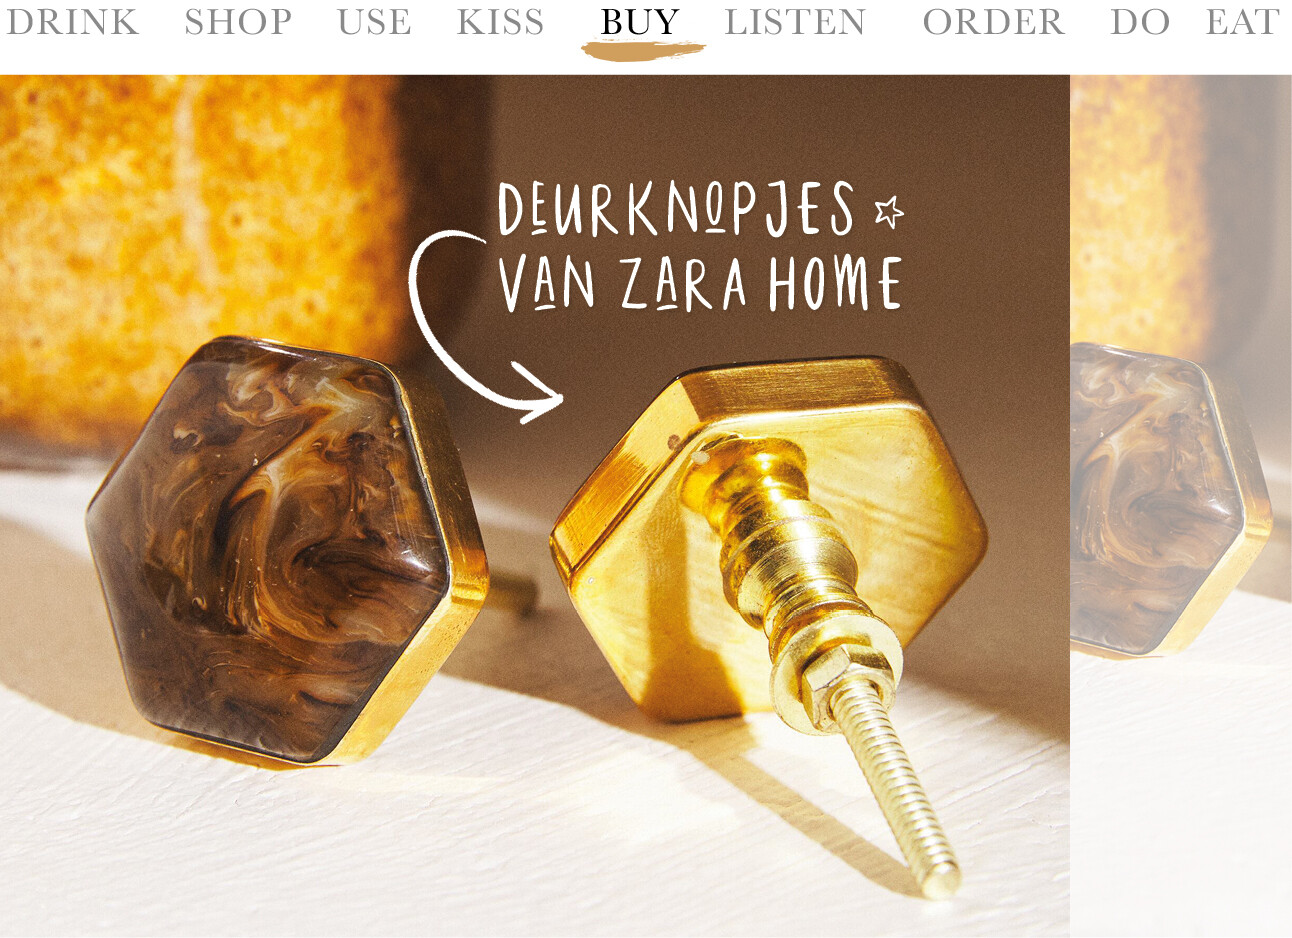 Today we buy deurknopjes van Zara Home